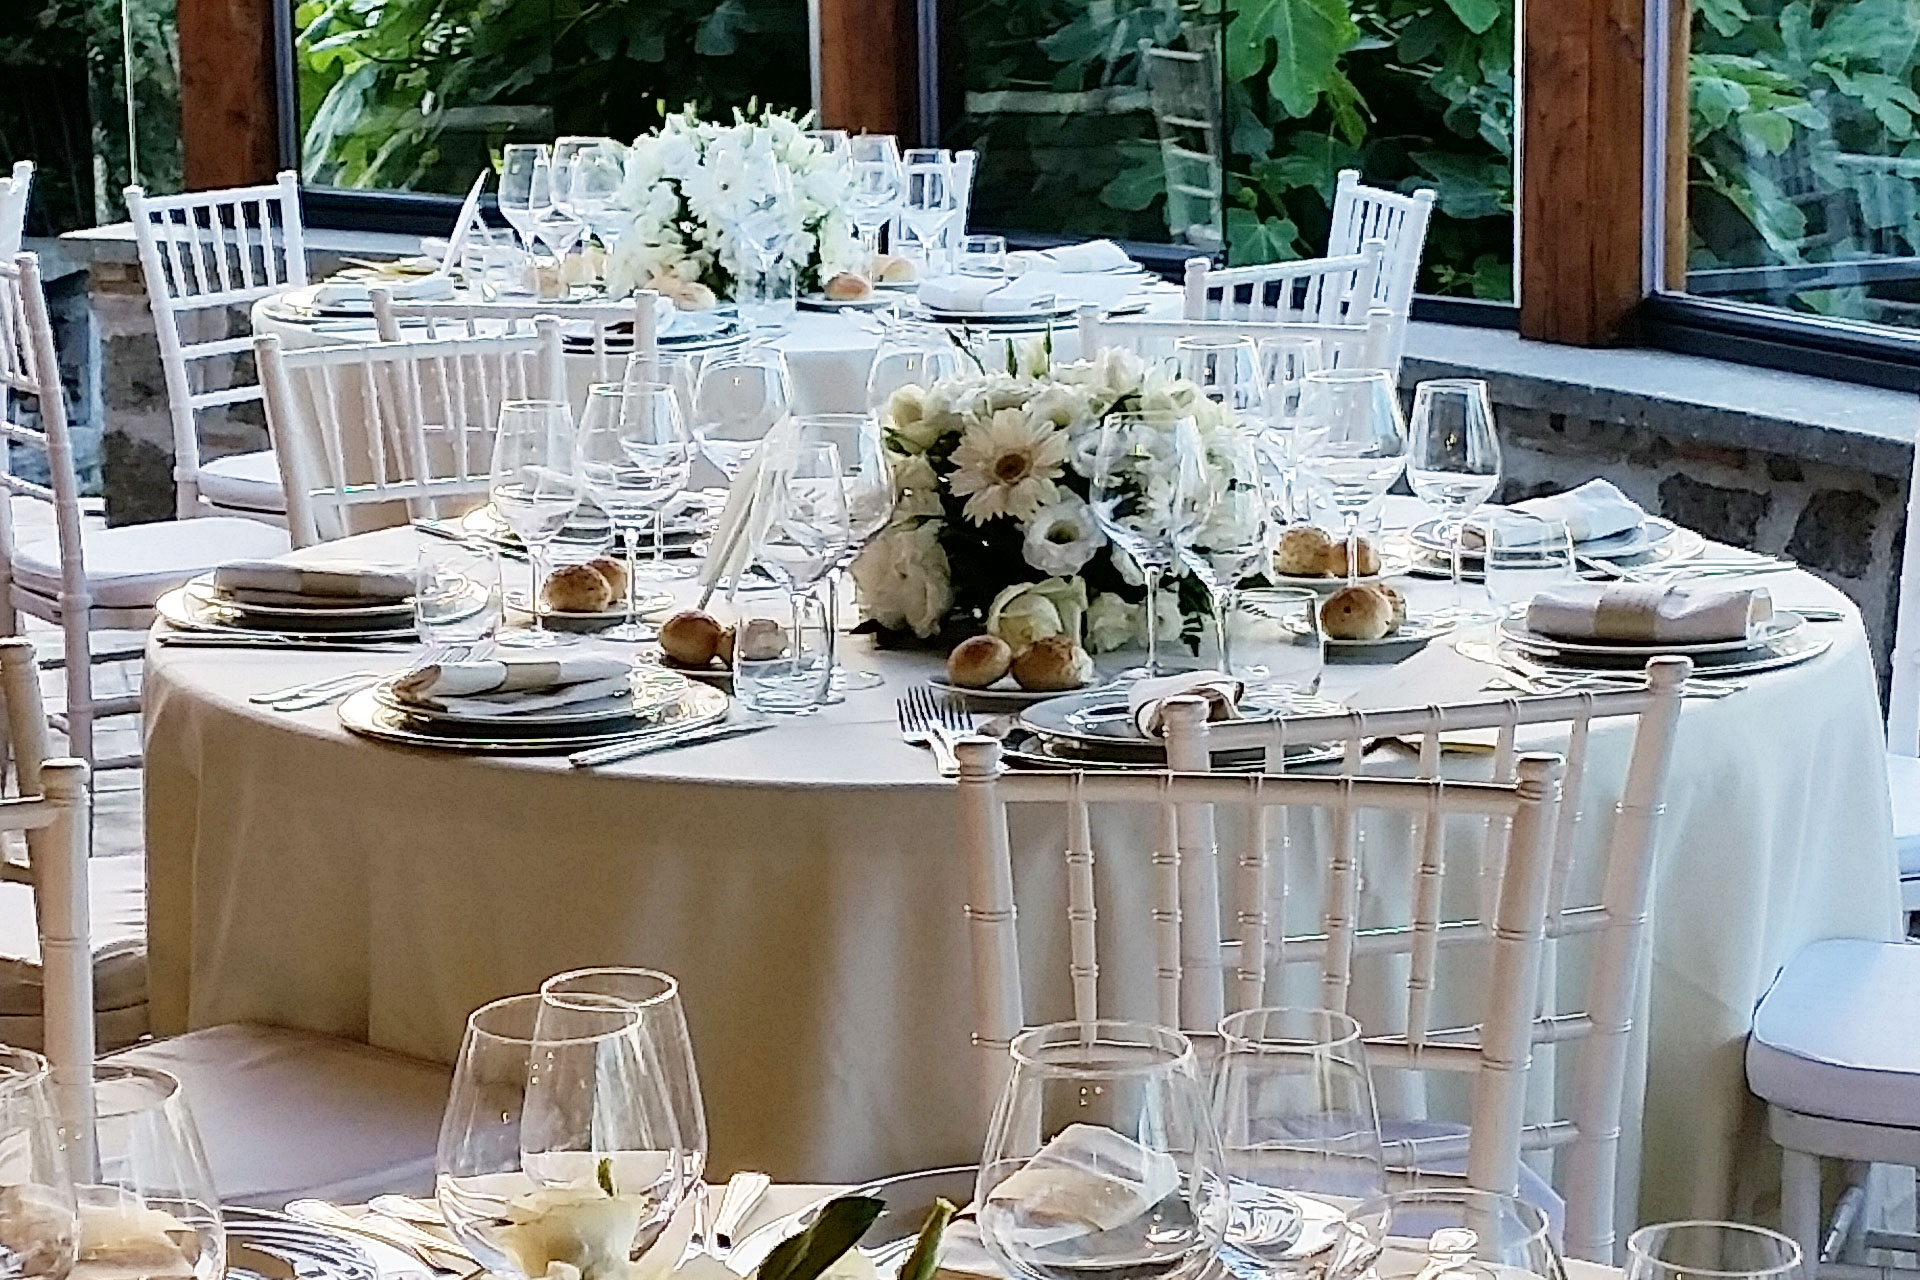 Matrimonio Country Chic Location Roma : Matrimonio shabby chic maan banqueting catering roma